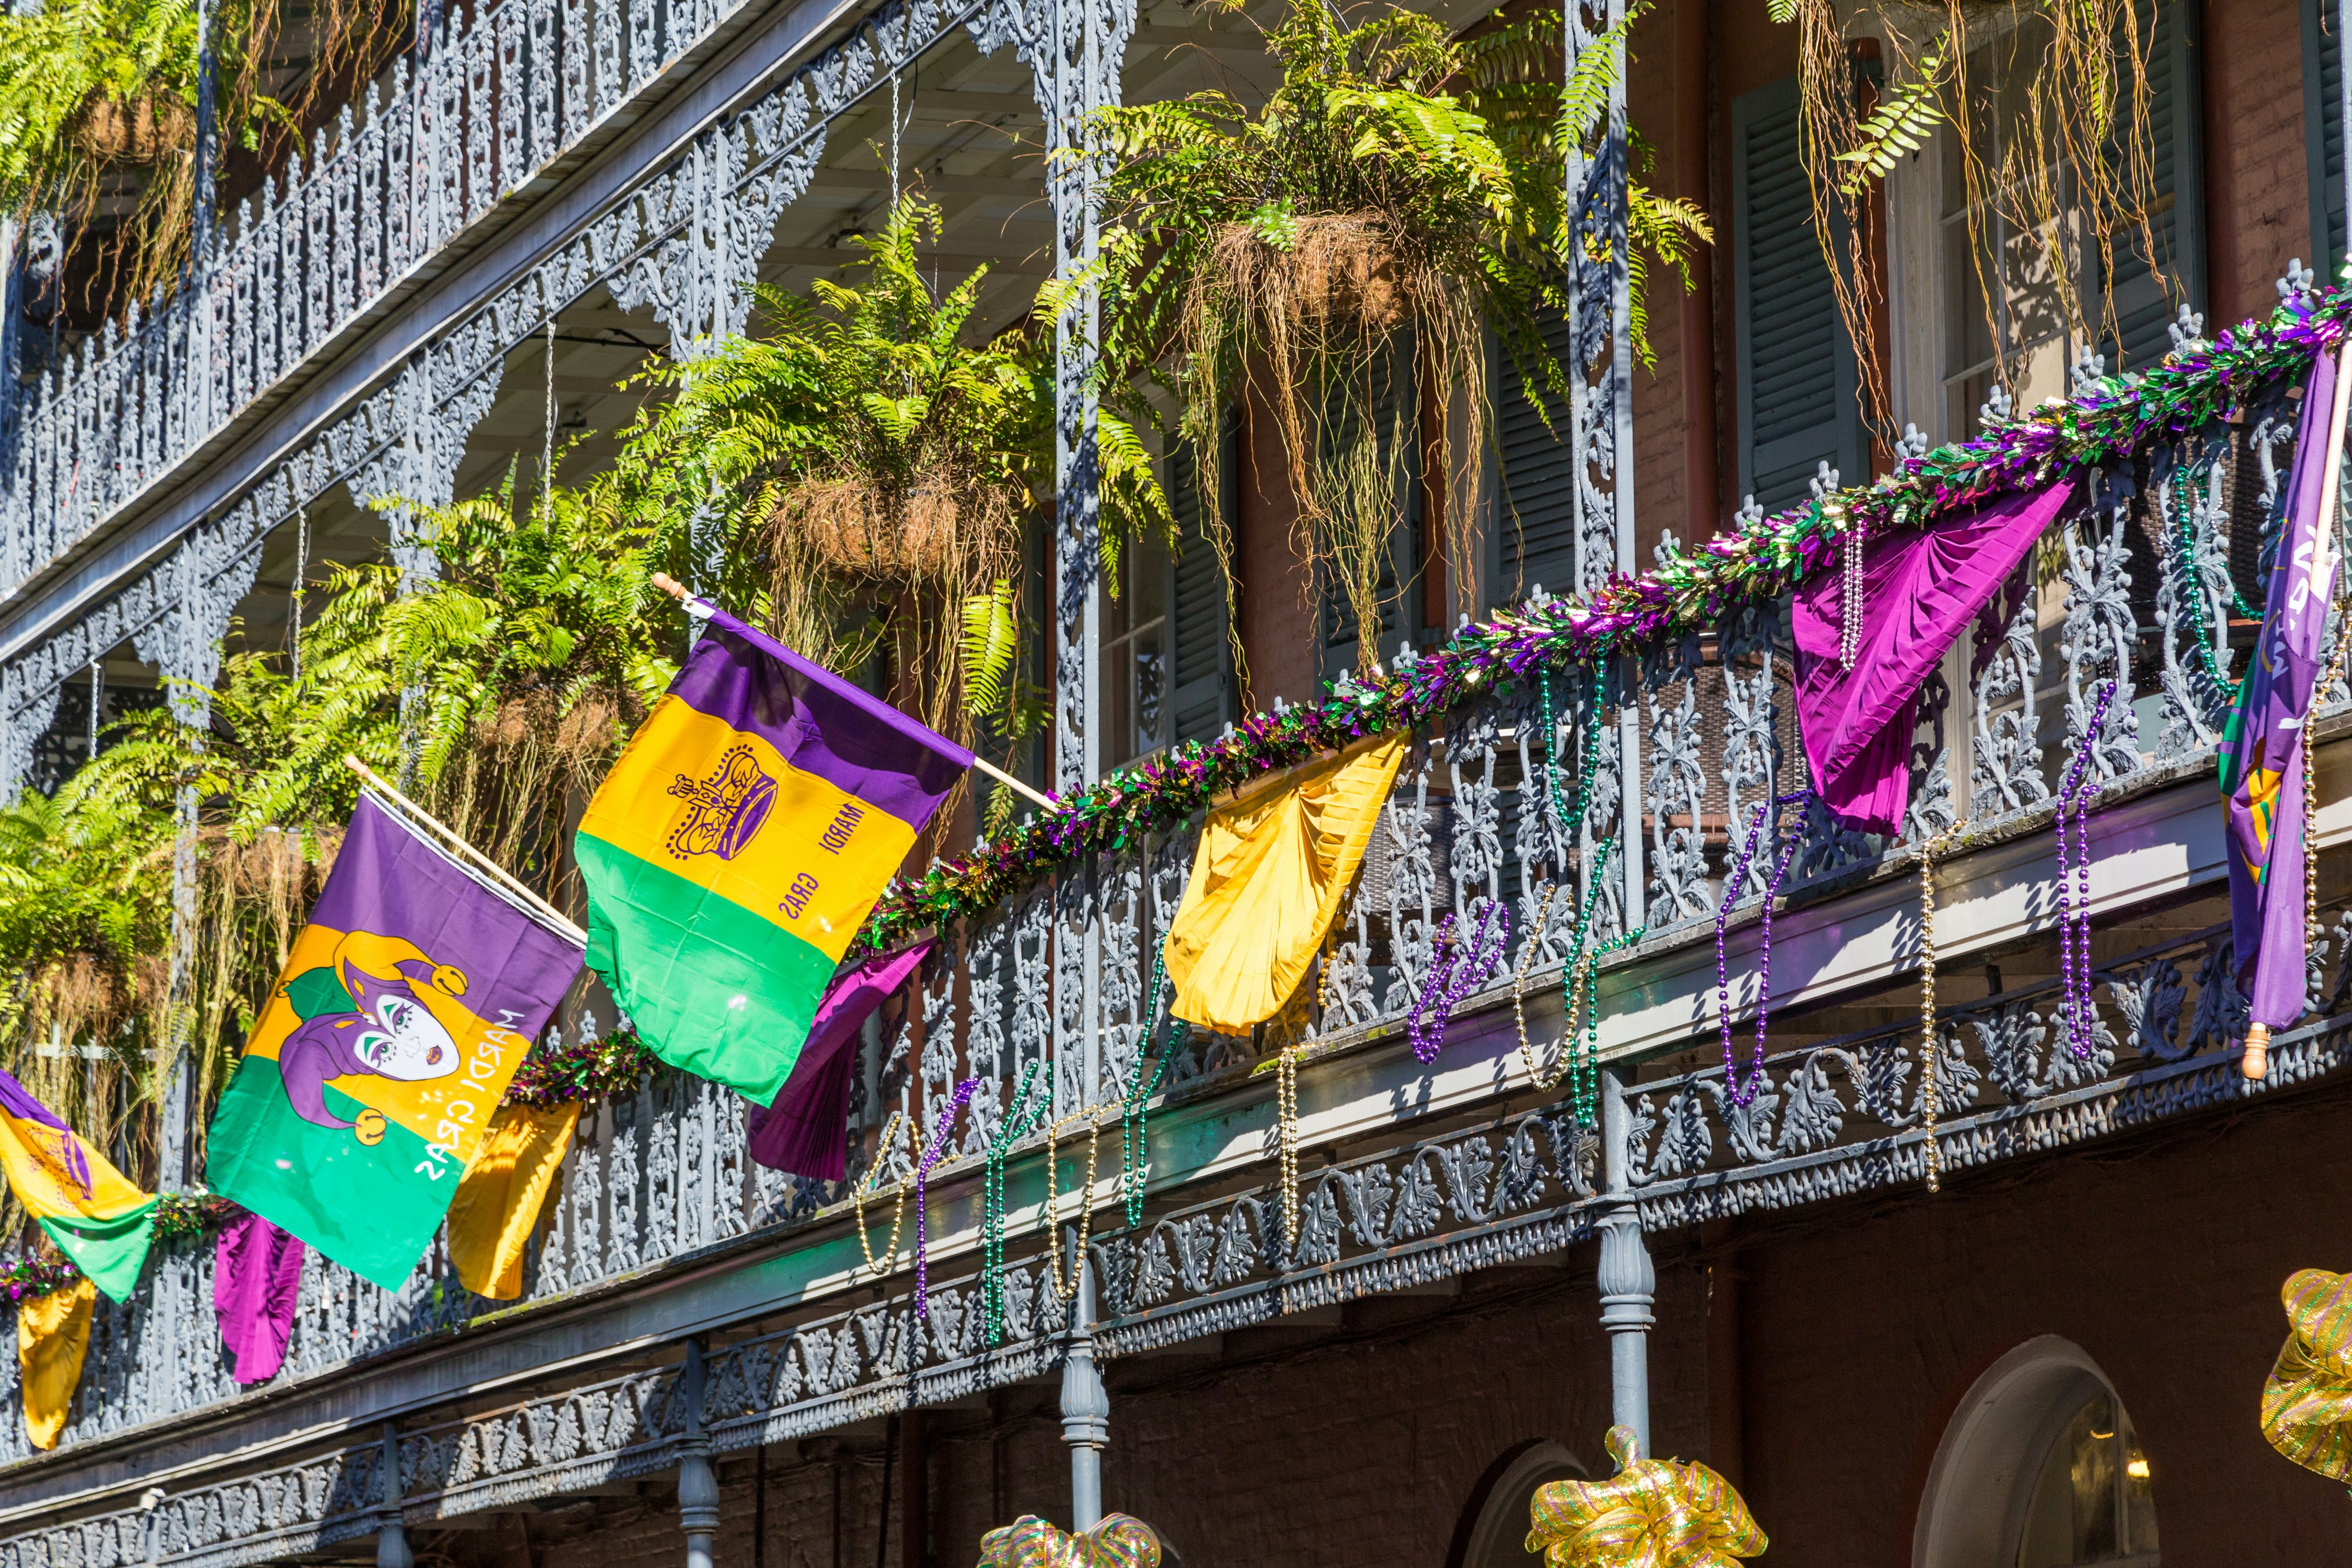 Watch the French Quarter come alive during Mardi Gras.